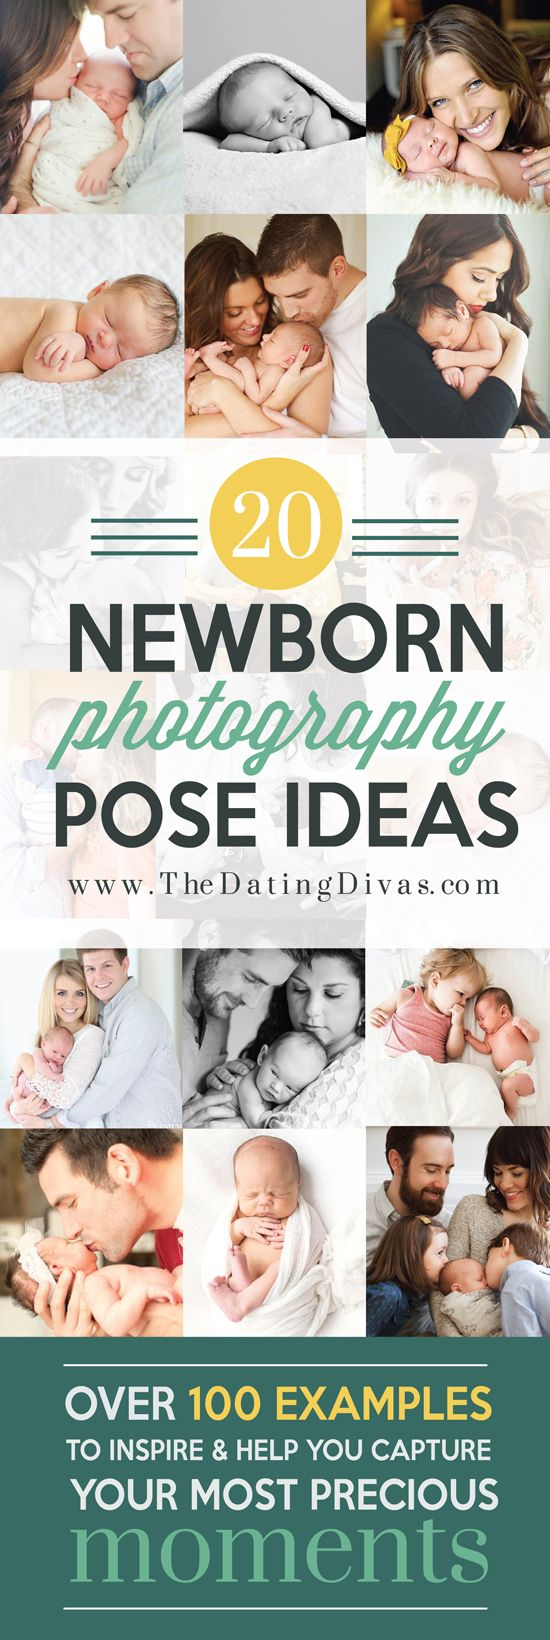 20 Adorable Newborn Photography Pose Ideas                                                                                                                                                      More